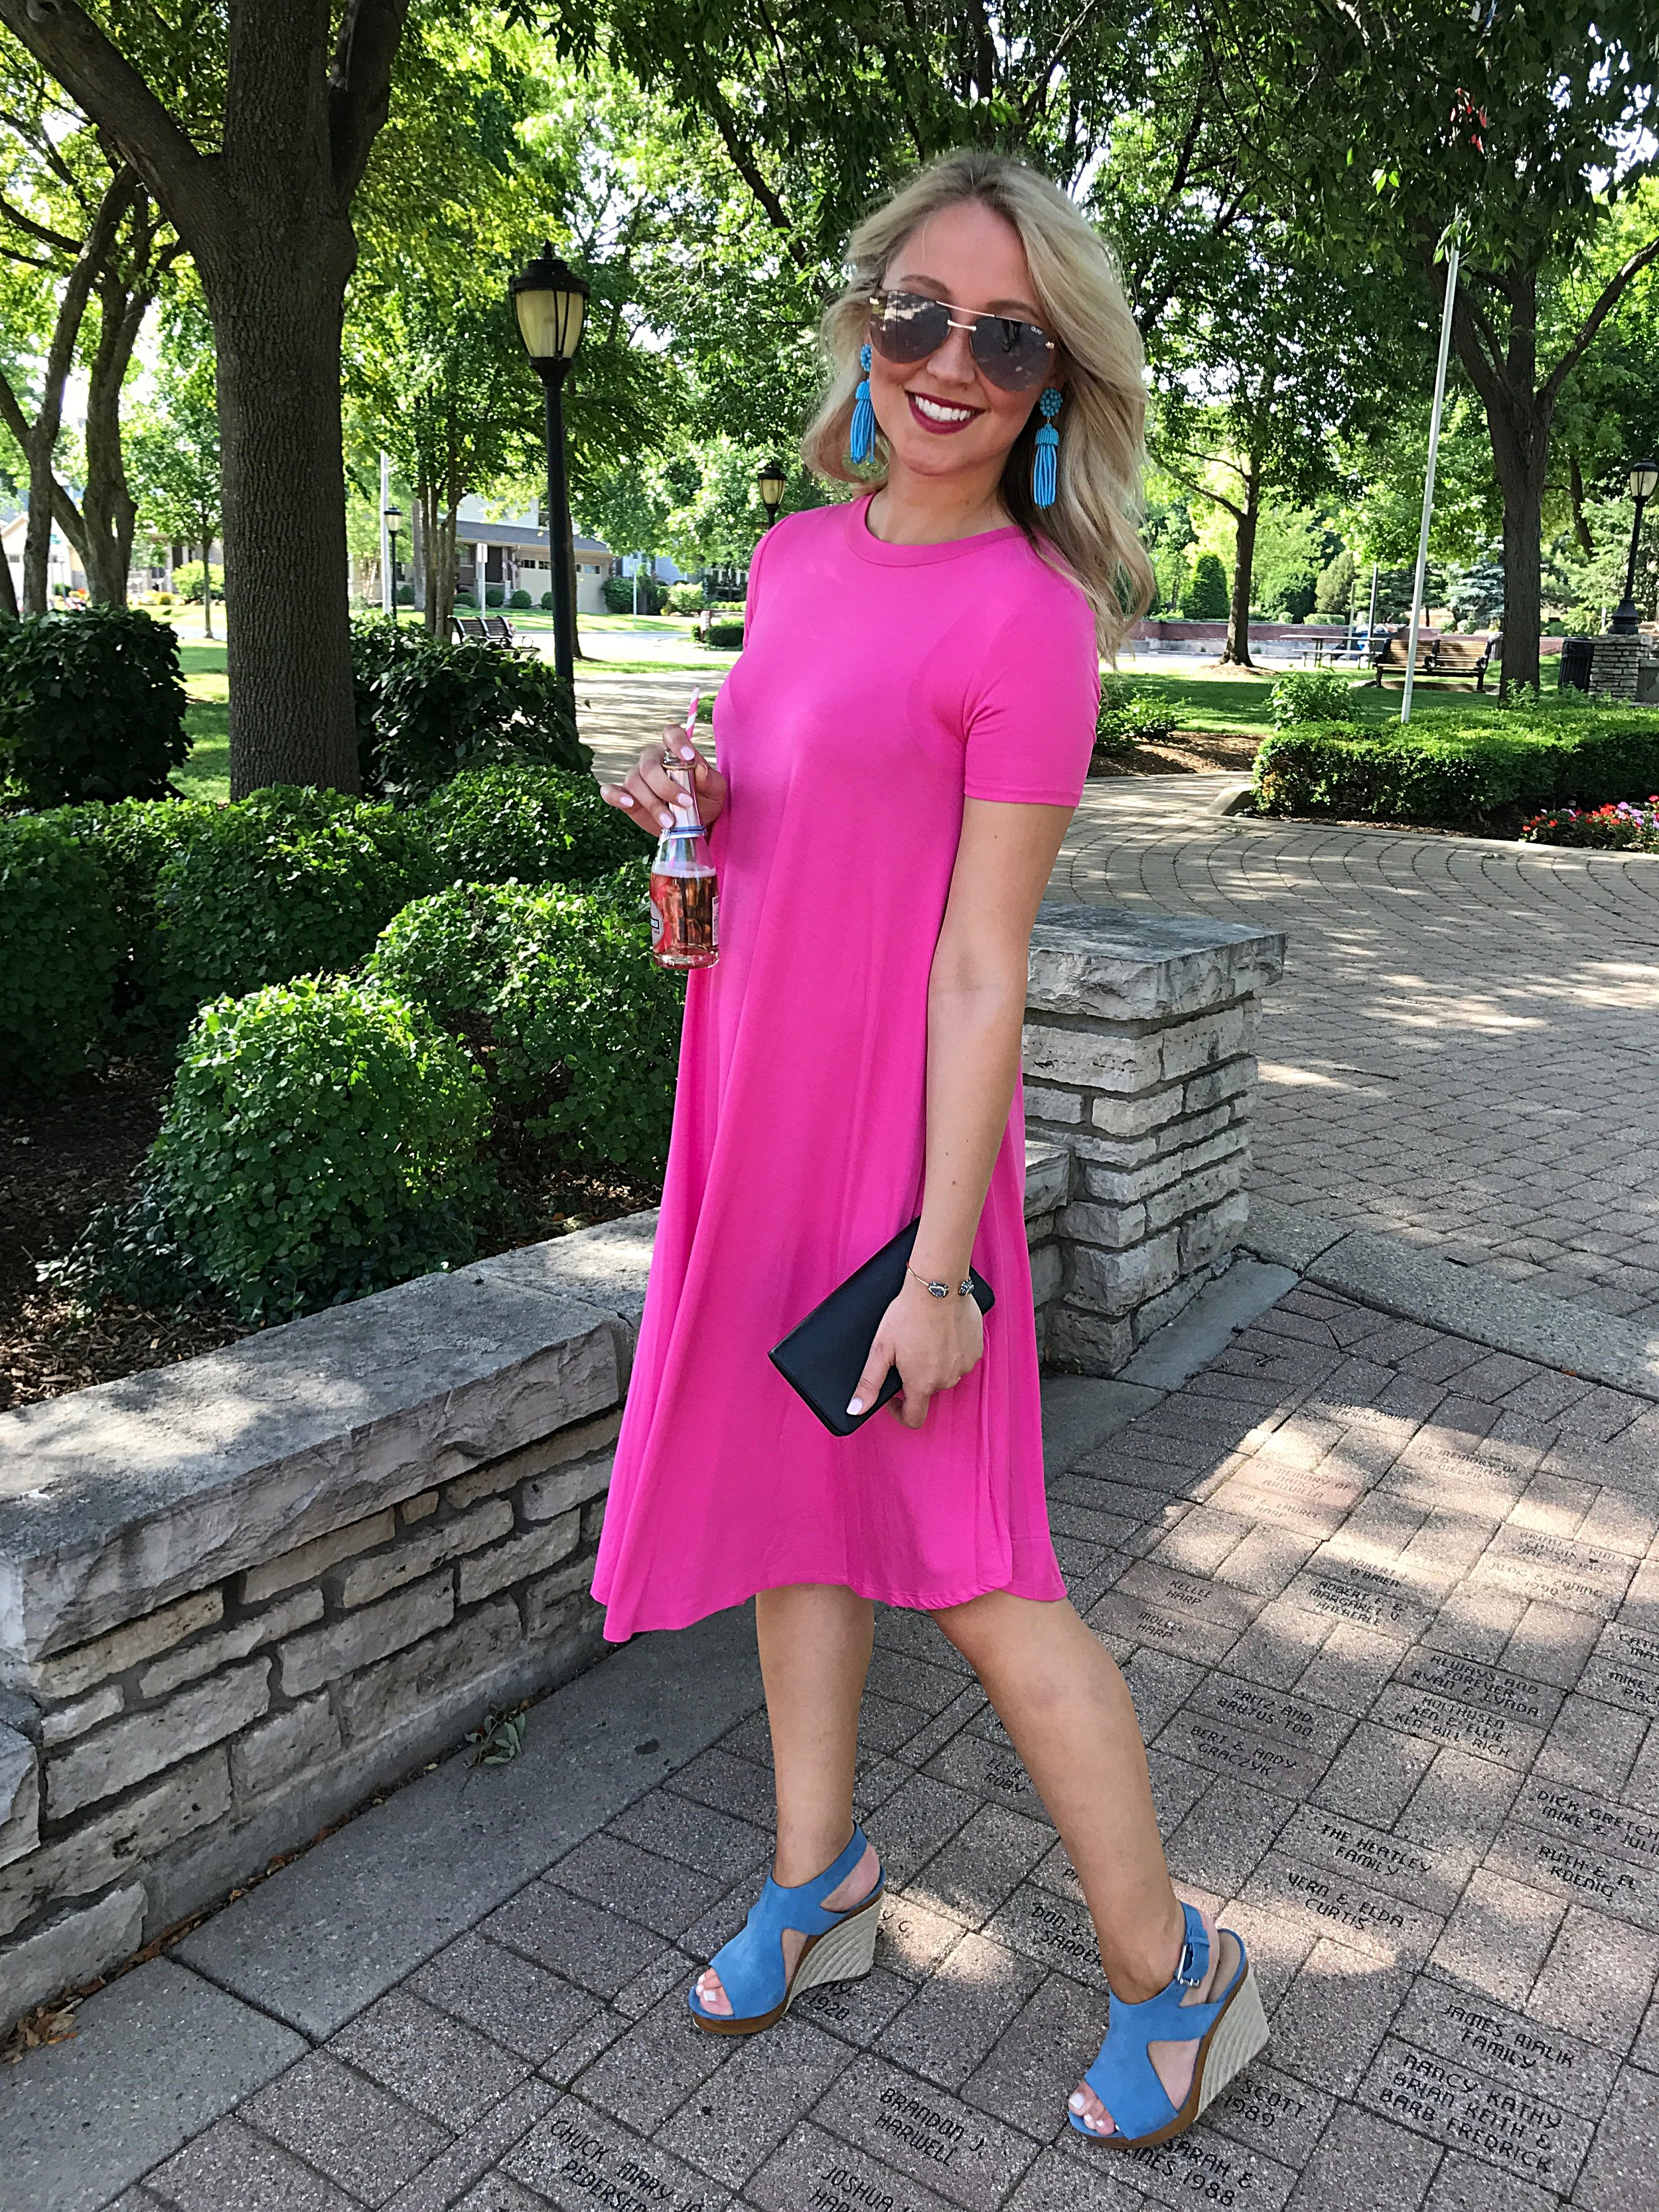 Dress C/O - Bluish & Co.   Earrings C/O Lisi Lerch Wedges C/O Michael Kors - sold out, similar here